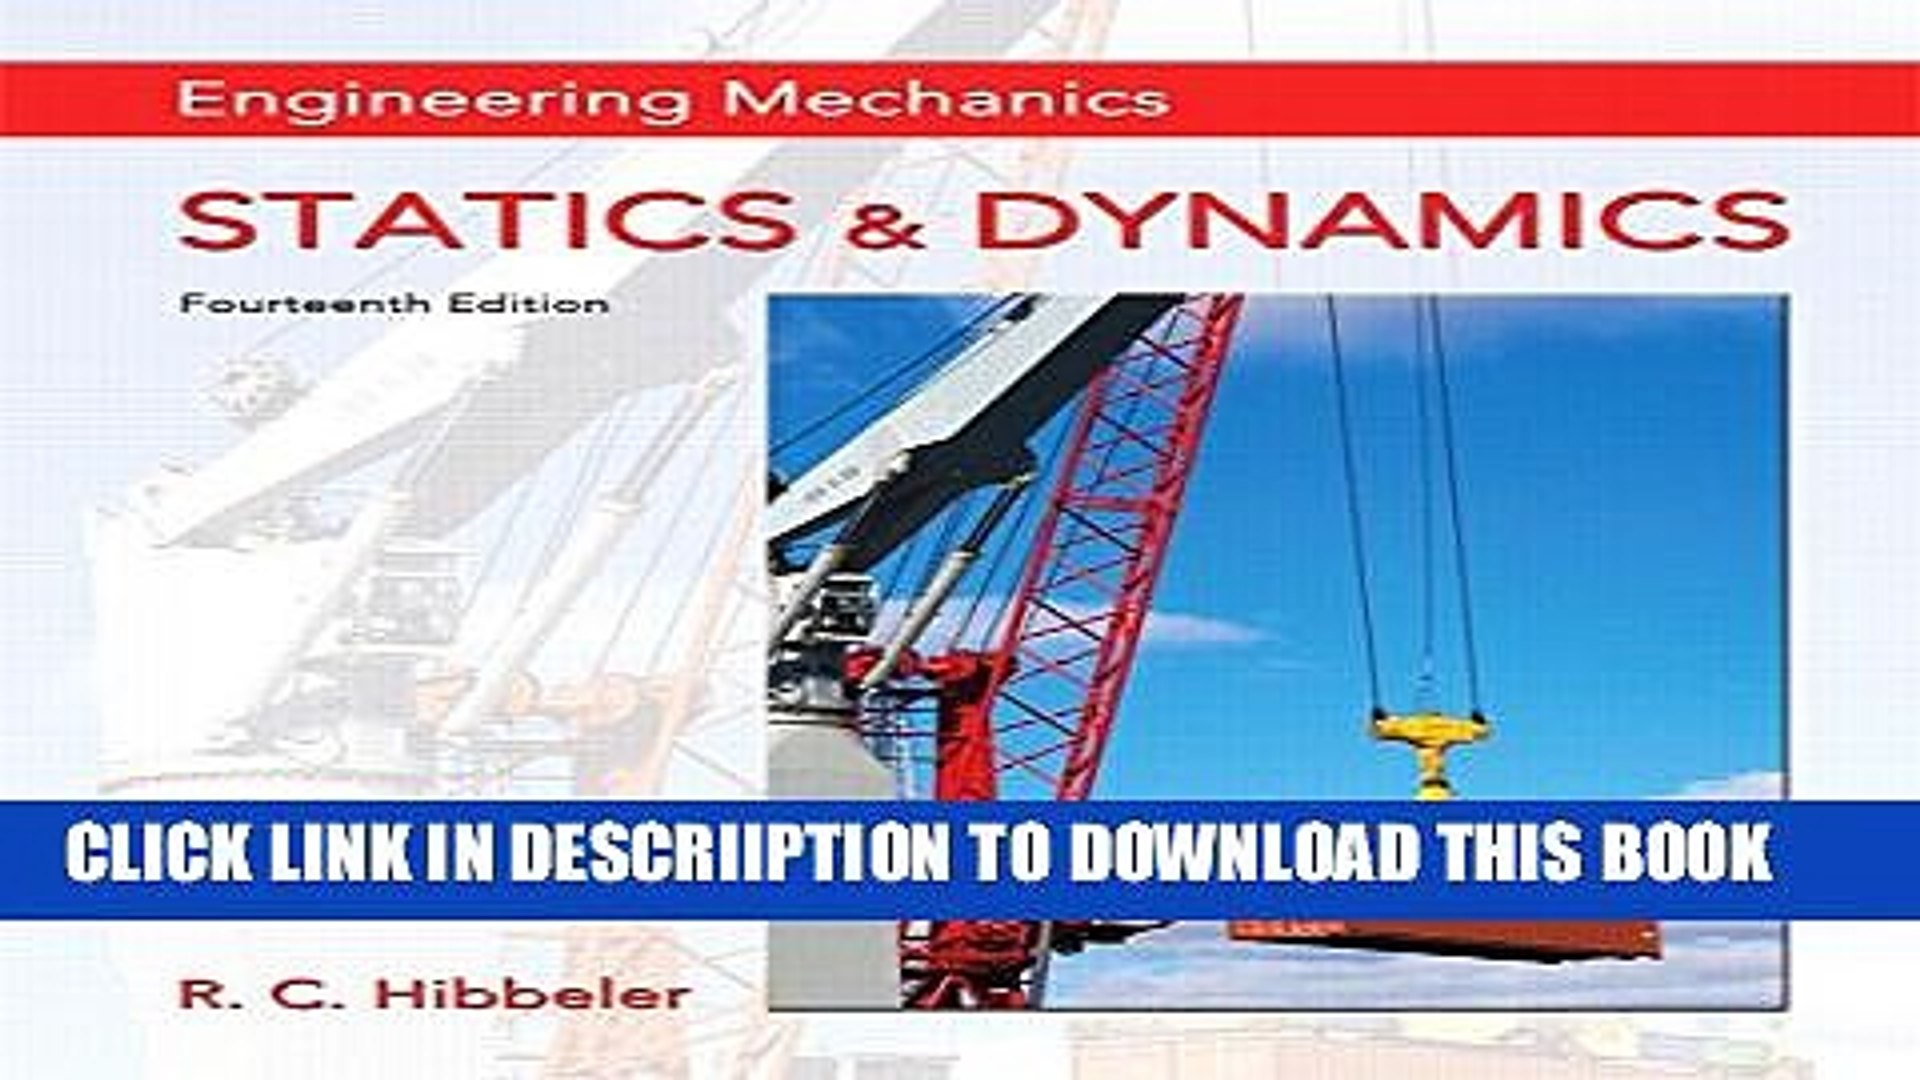 Engineering Mechanics Statics Hibbeler 14th Edition Pdf Download Free